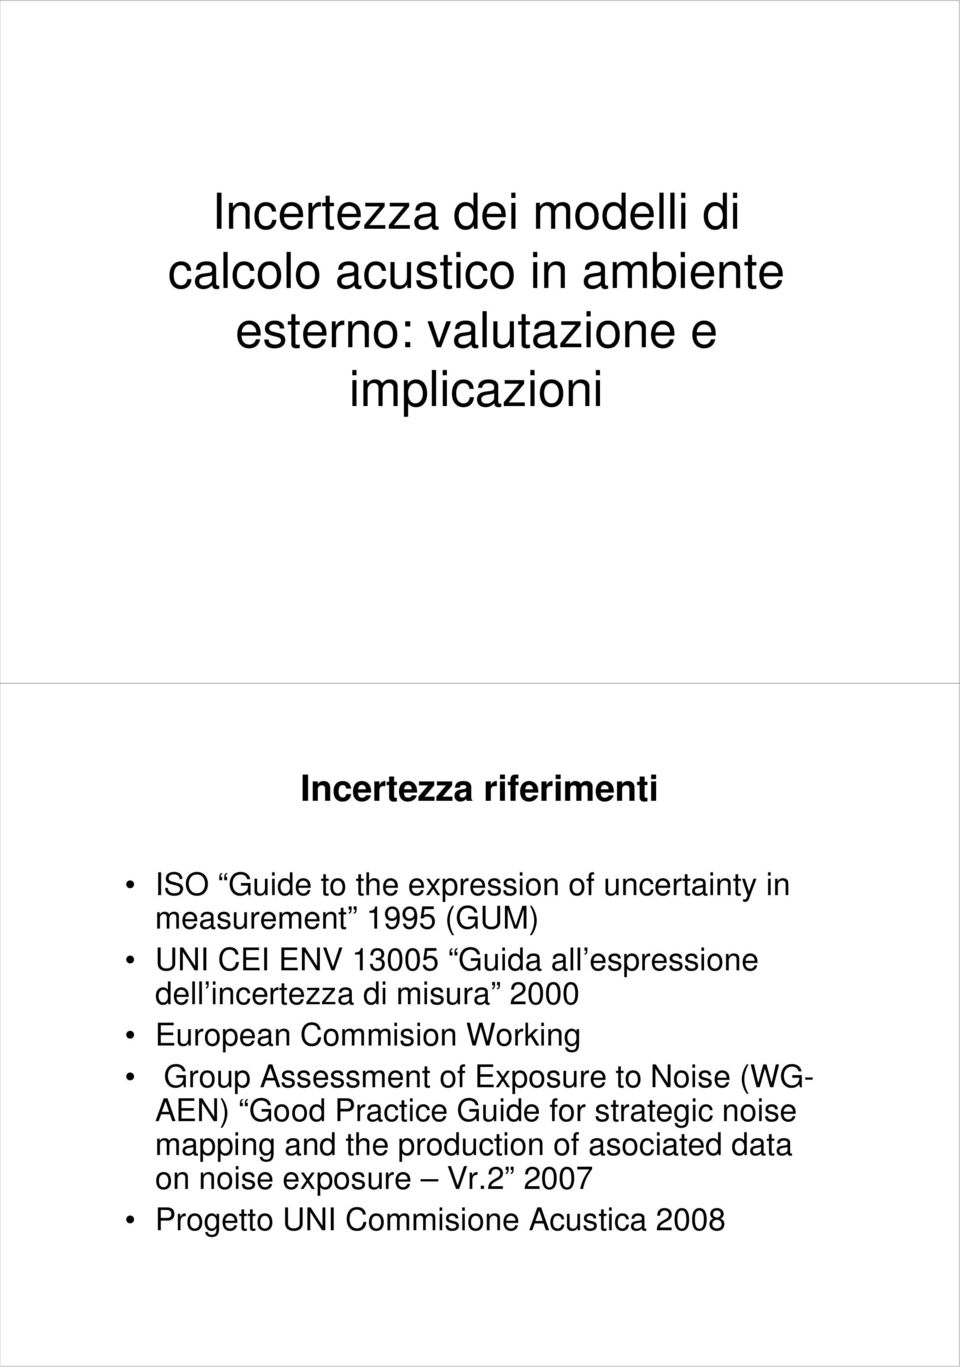 incertezza di misura 2000 European Commision Working Group Assessment of Exposure to Noise (WG- AEN) Good Practice